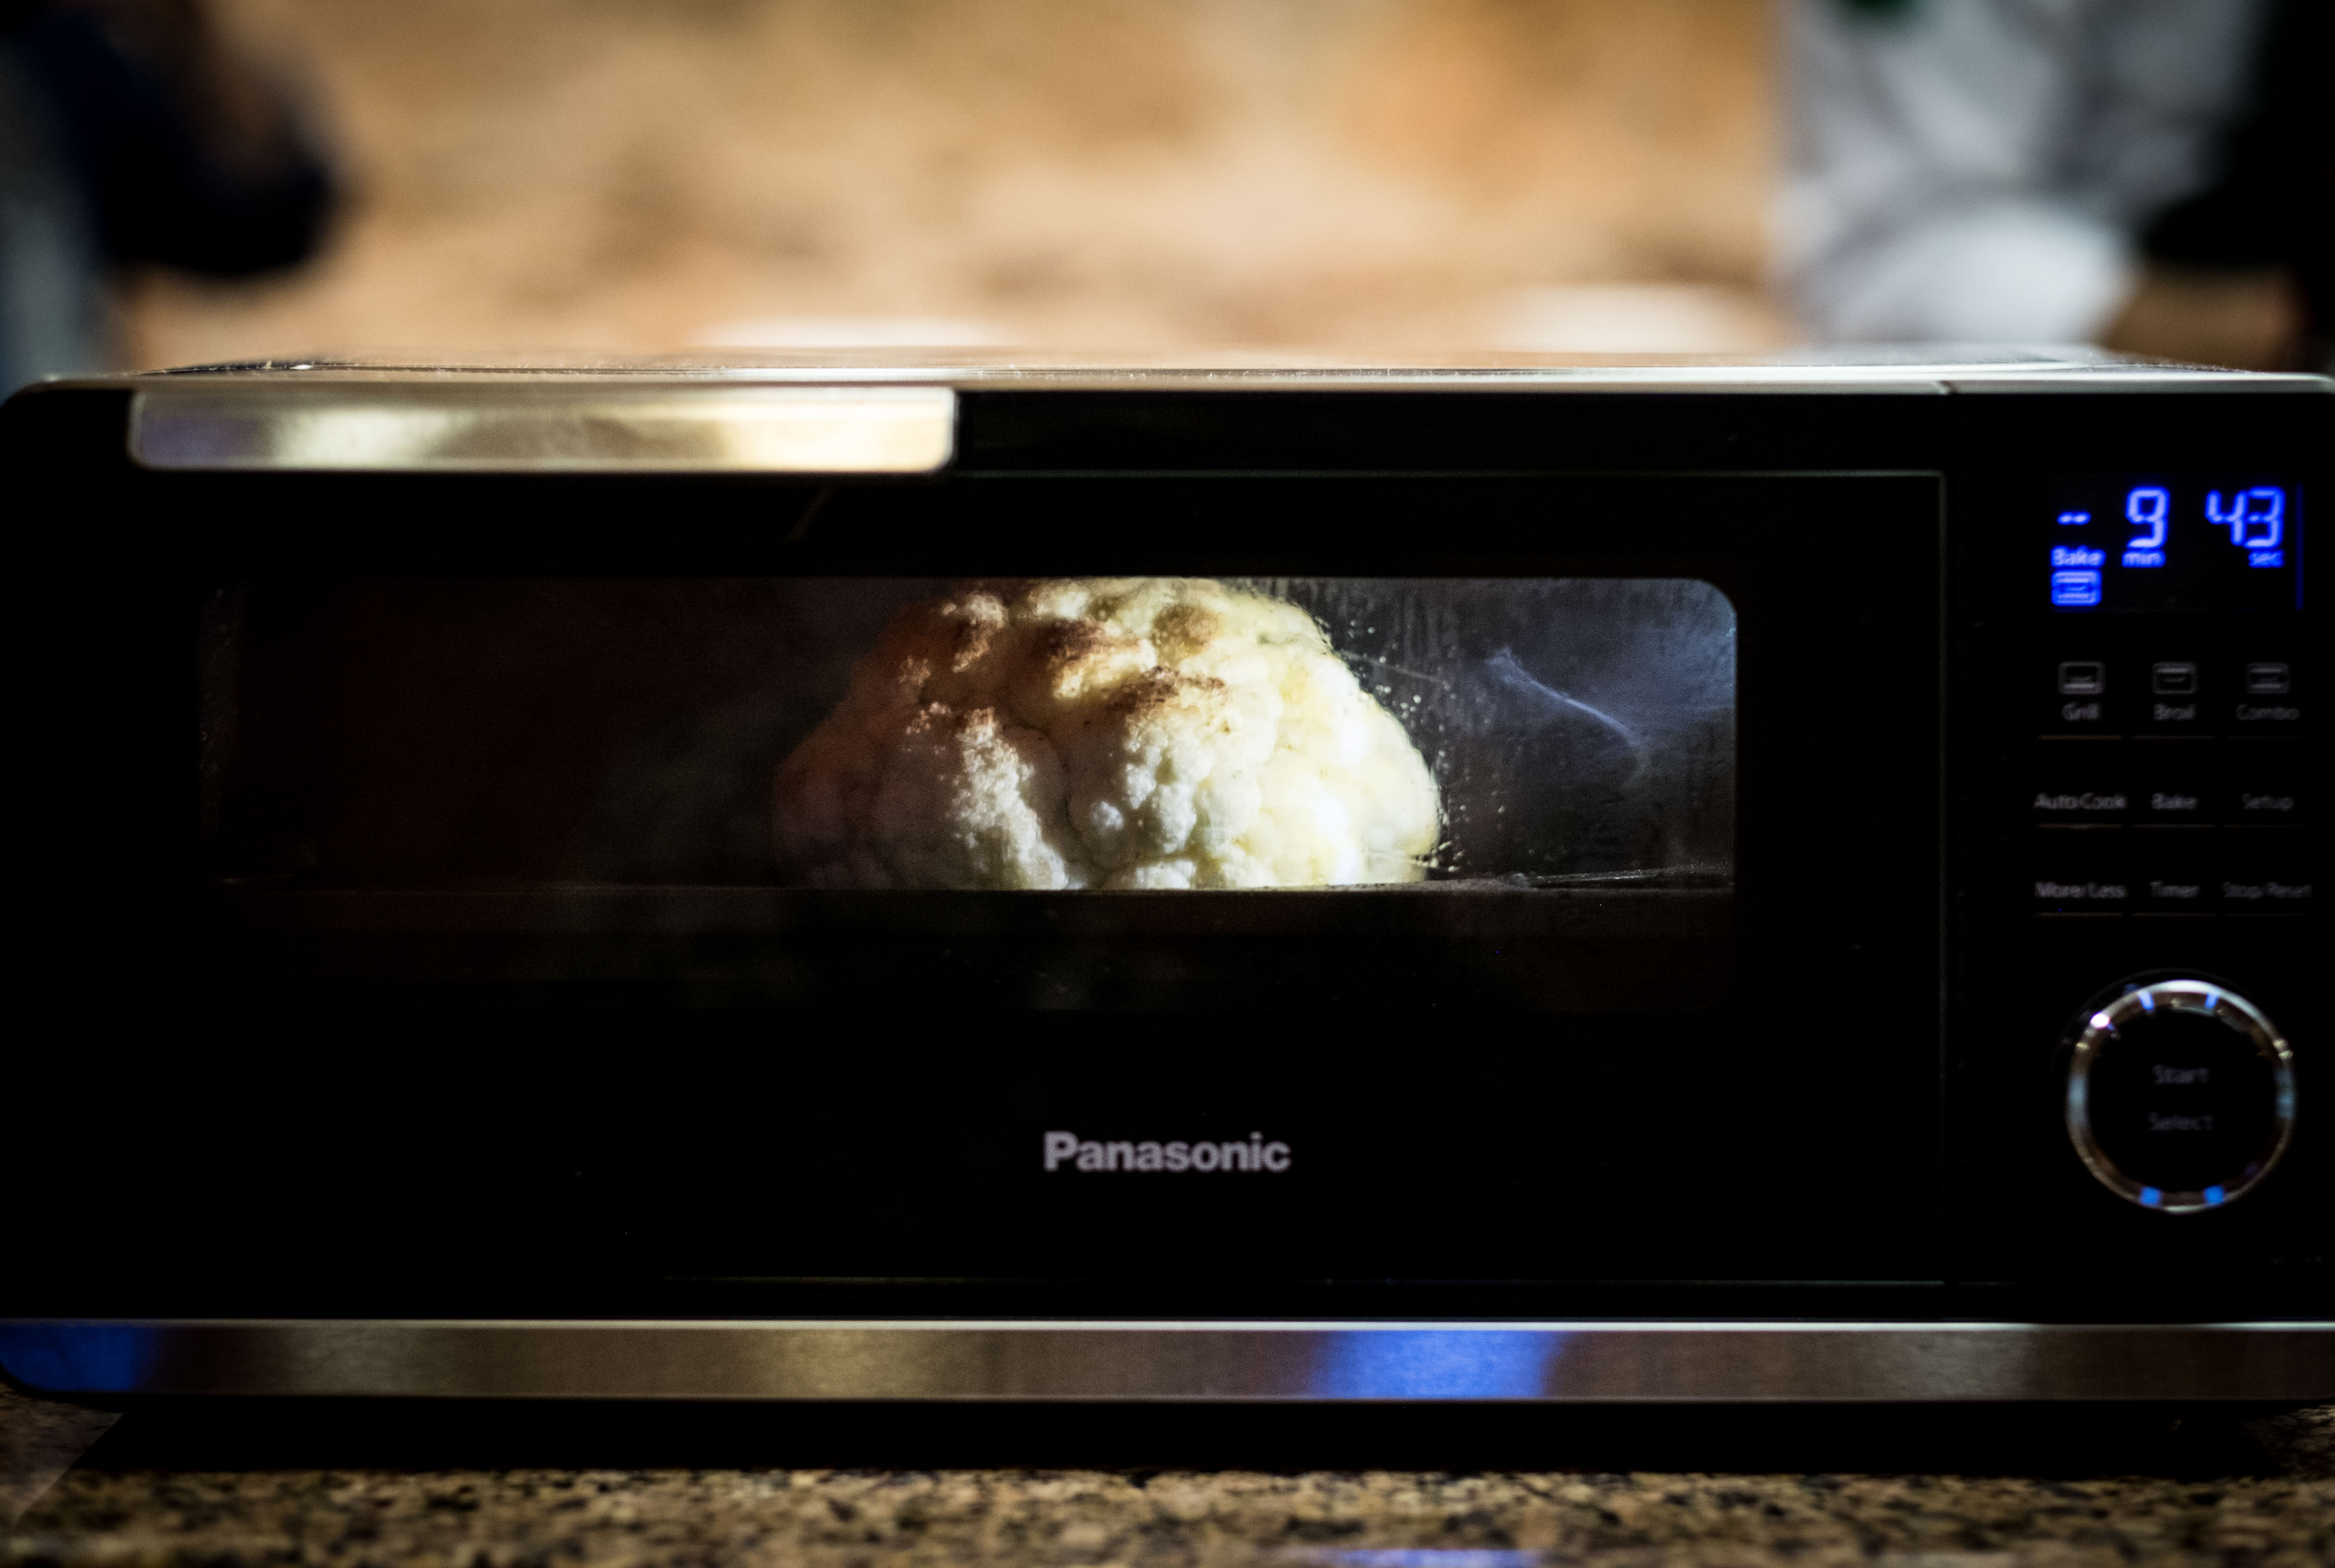 panasonic-countertop-induction-oven-review-4